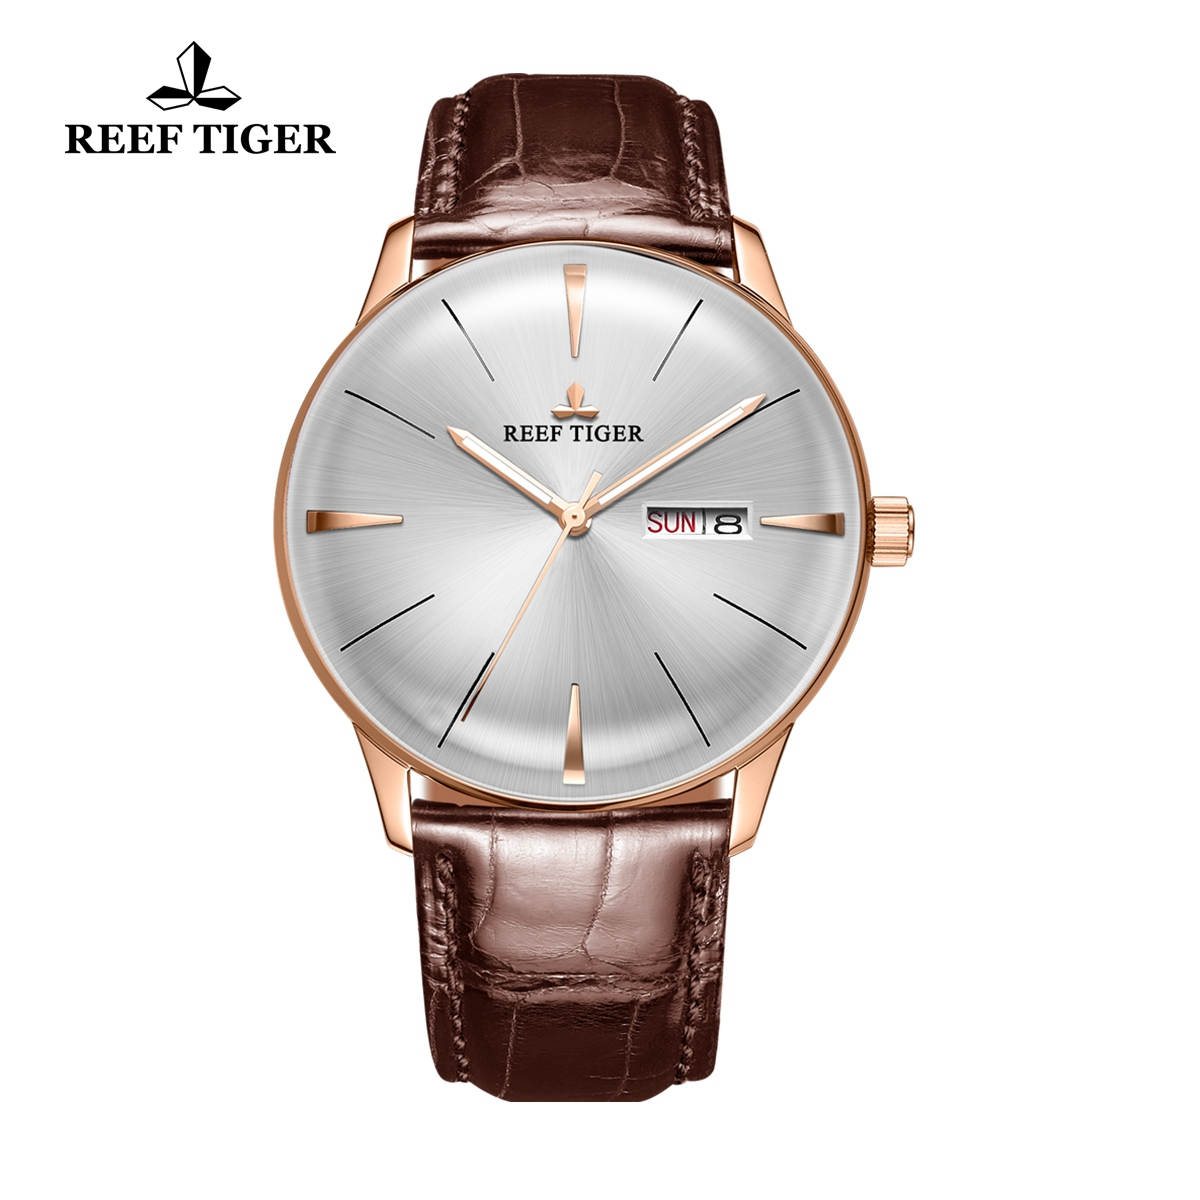 Reef Tiger Classic Heritor Men's Watch White Dial Leather Strap Automatic Watches RGA8238-PWB